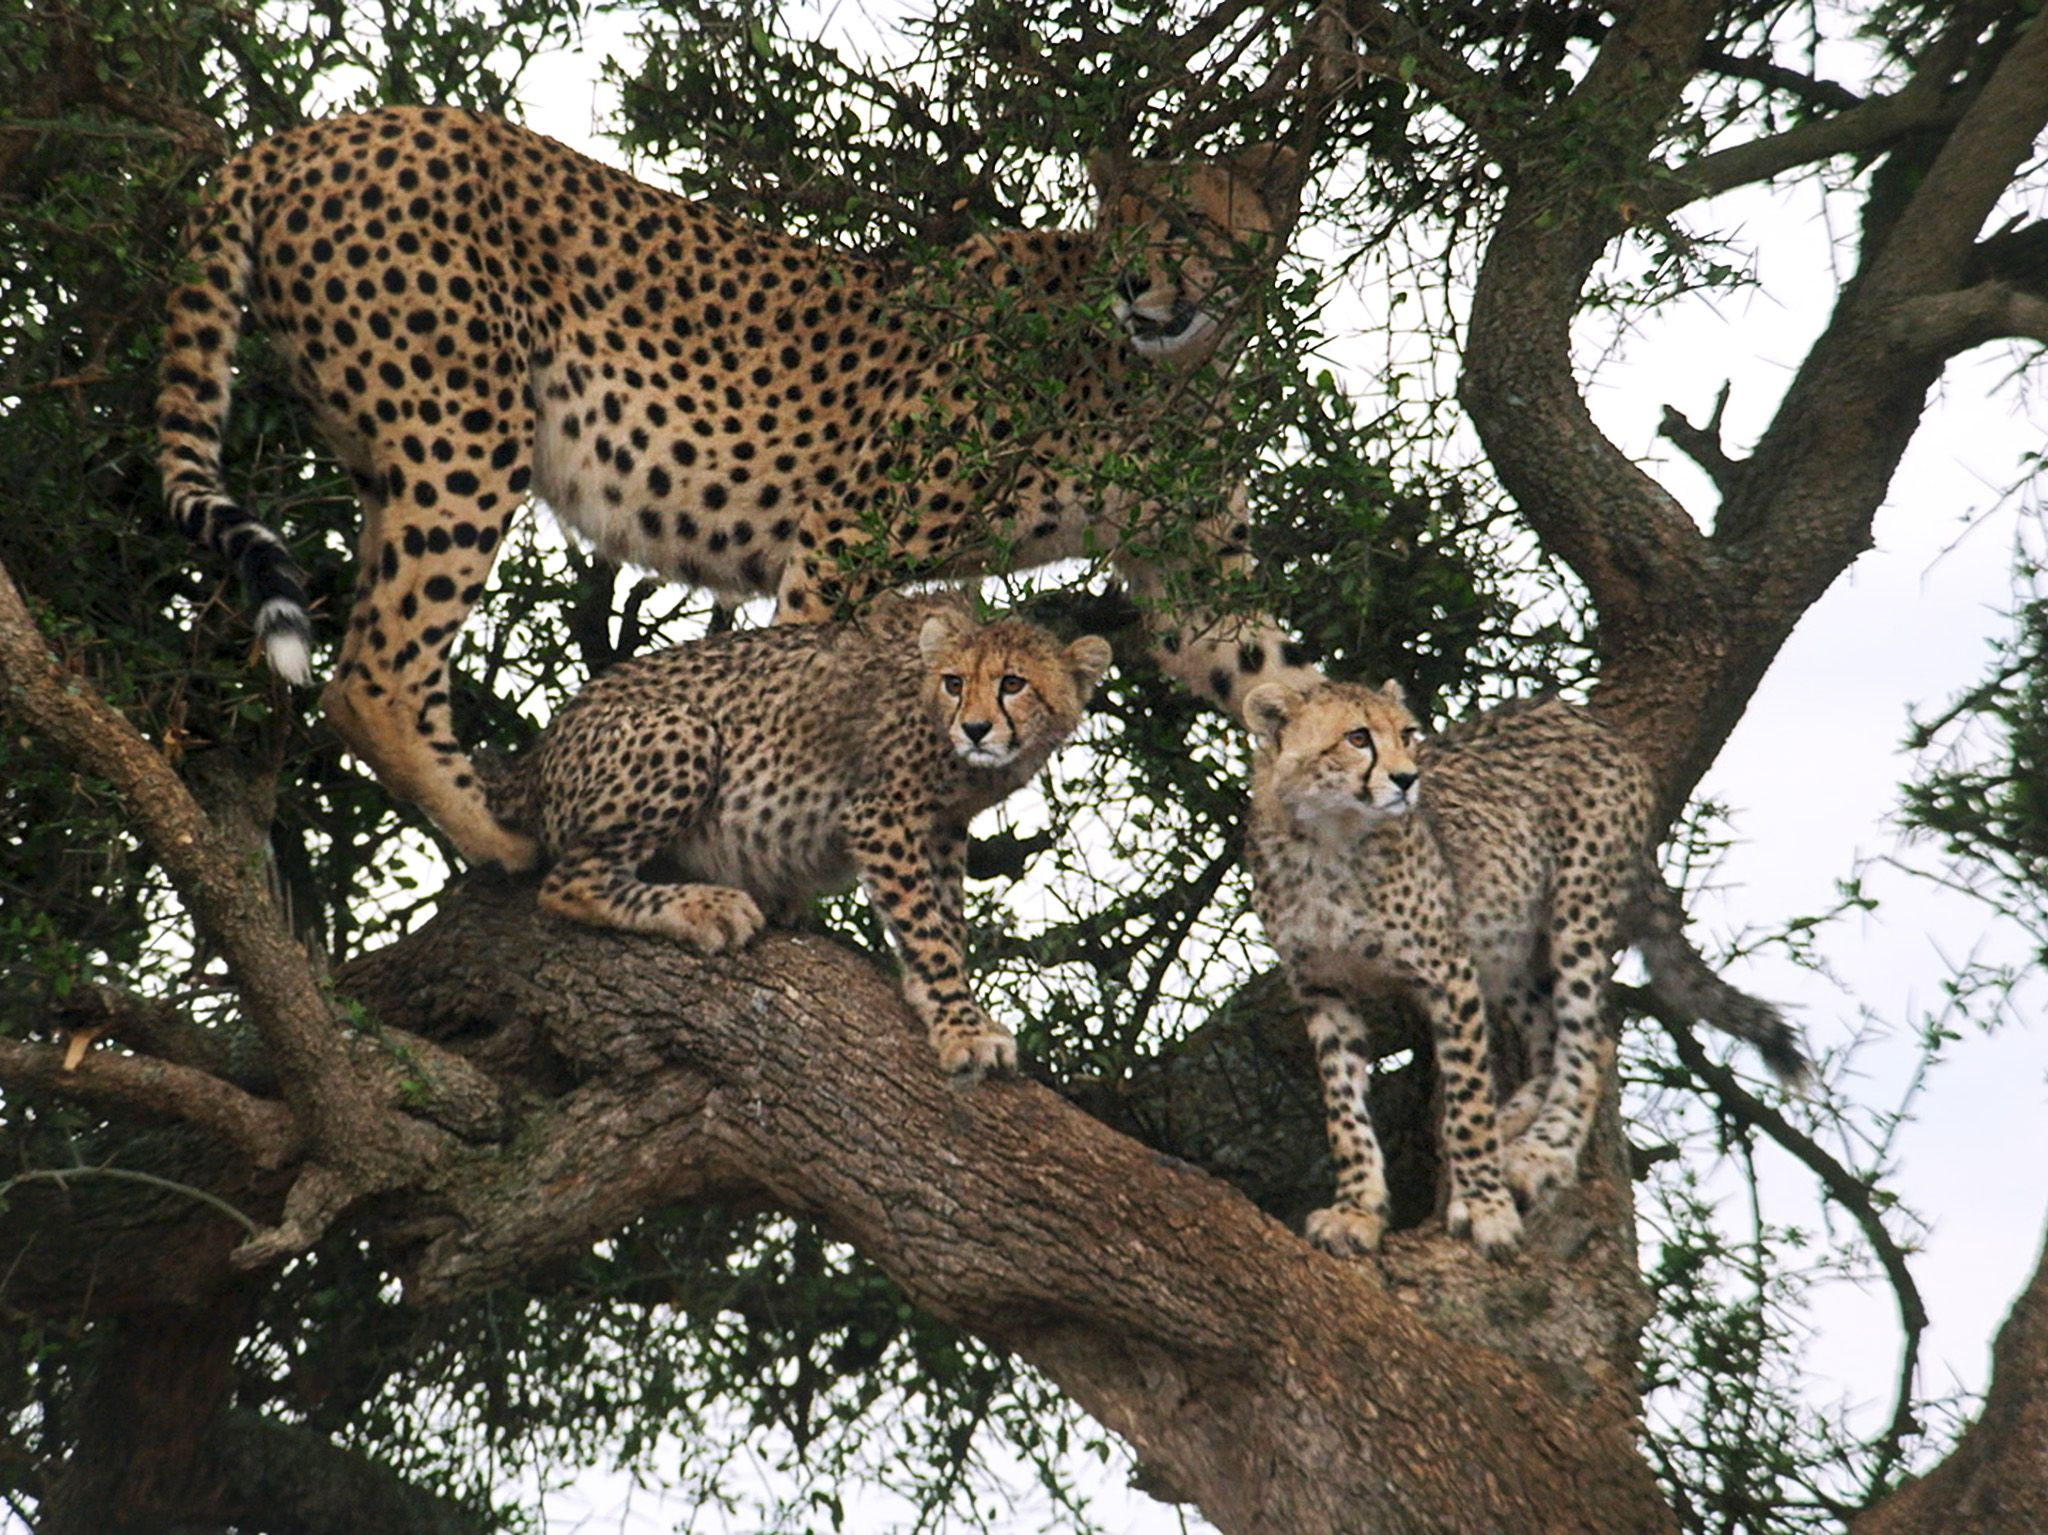 Naboisho, Kenya:  Mother cheetah and cubs wait in tree.  This image is from Man Among Cheetahs. [Foto del giorno - gennaio 2018]